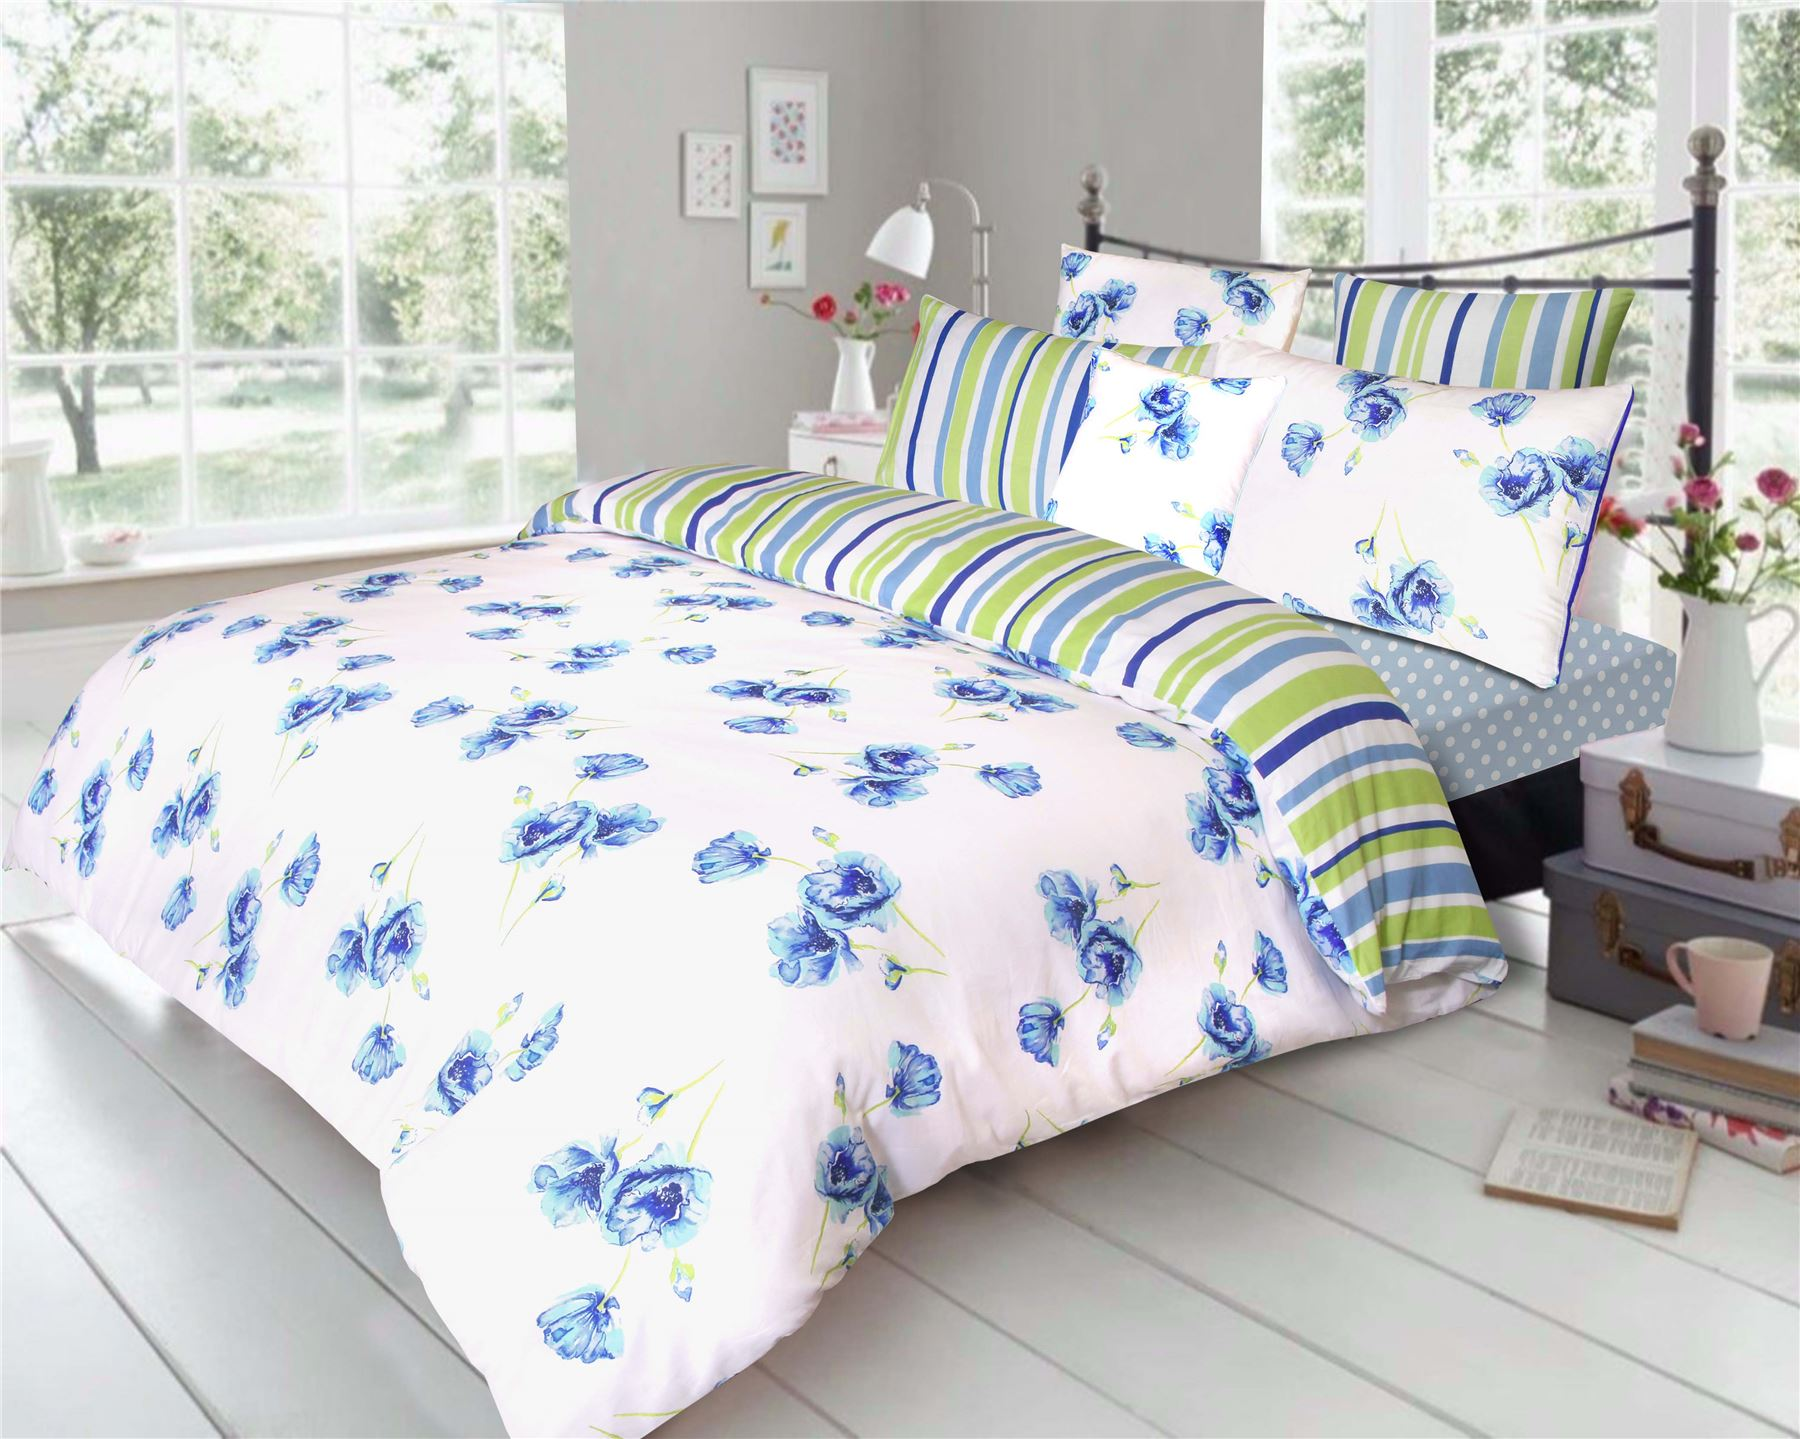 Poppy Floral 100 Cotton Quilt Duvet Cover Pillowcase Bedding Set Uk White Blue Ebay